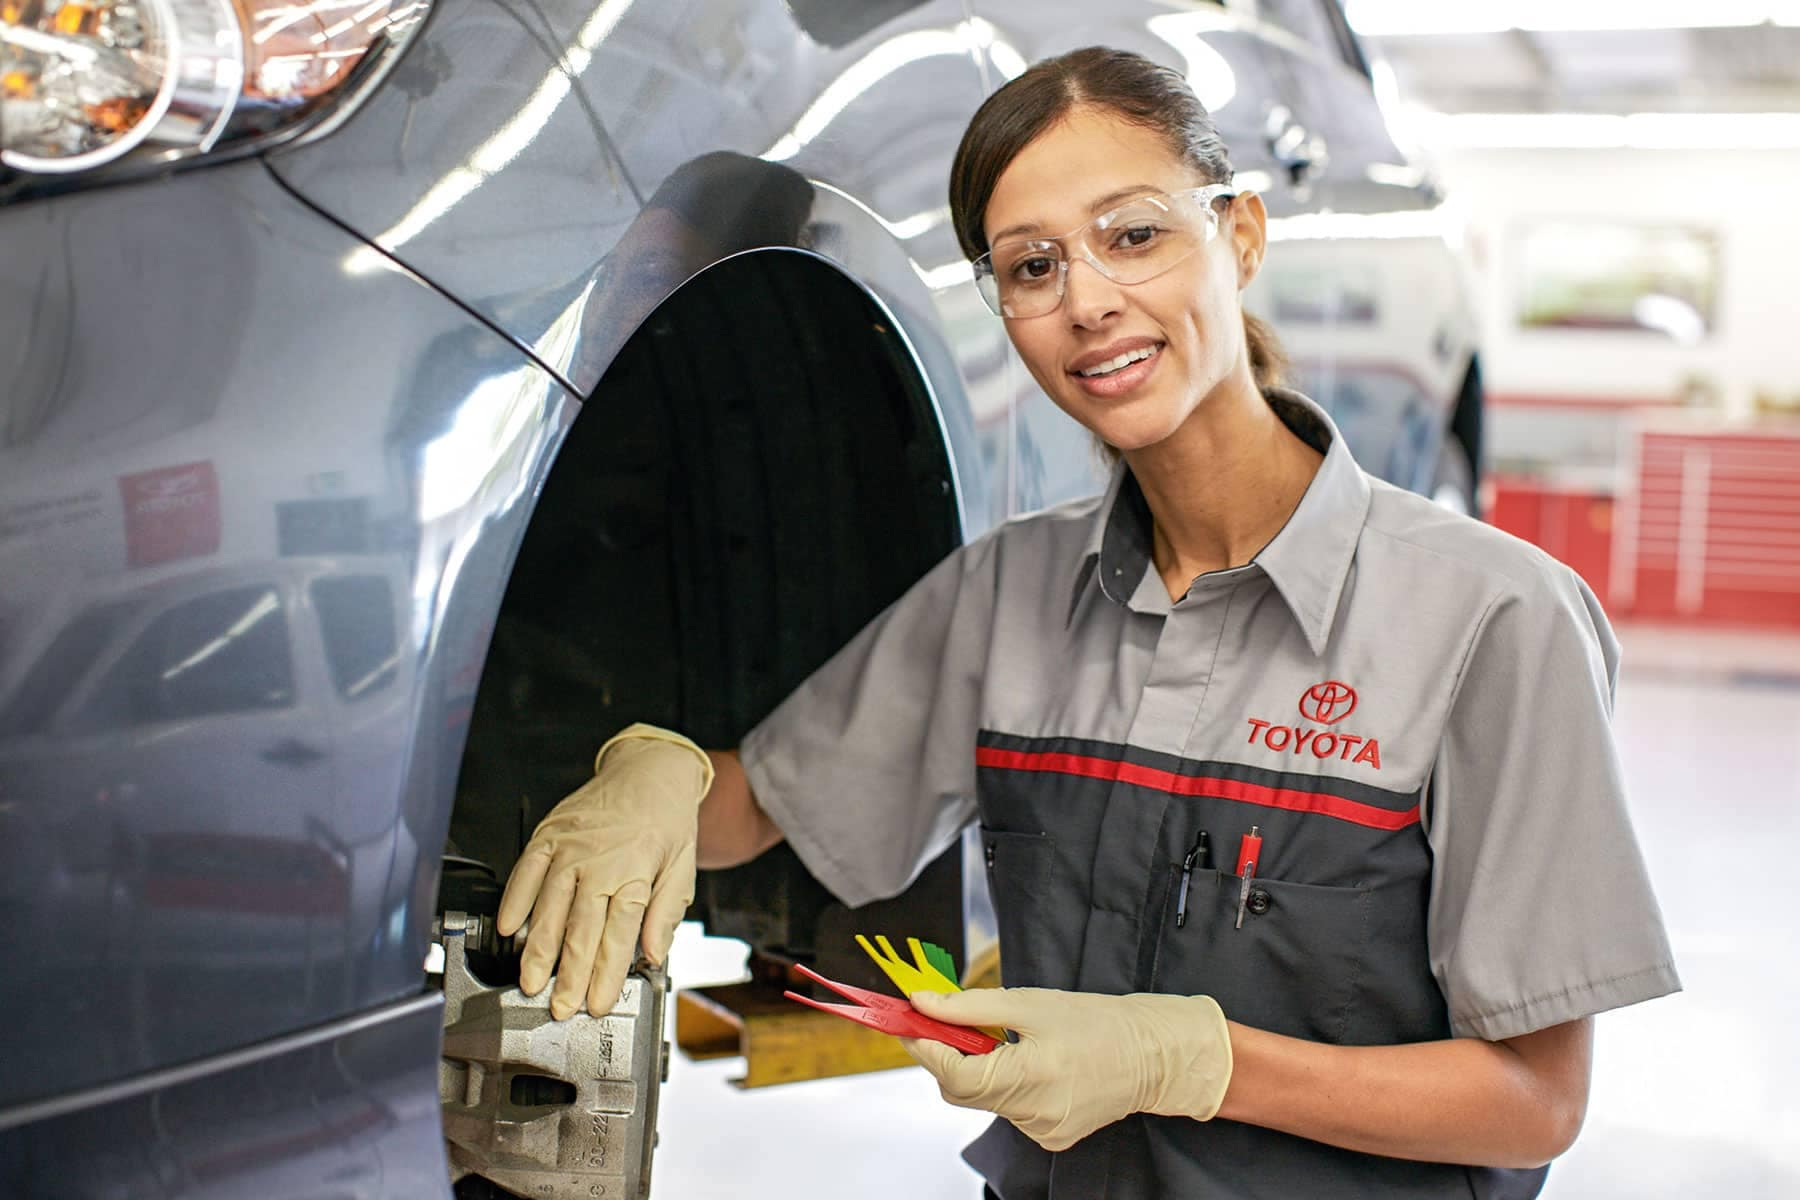 Toyota service technician working on brakes